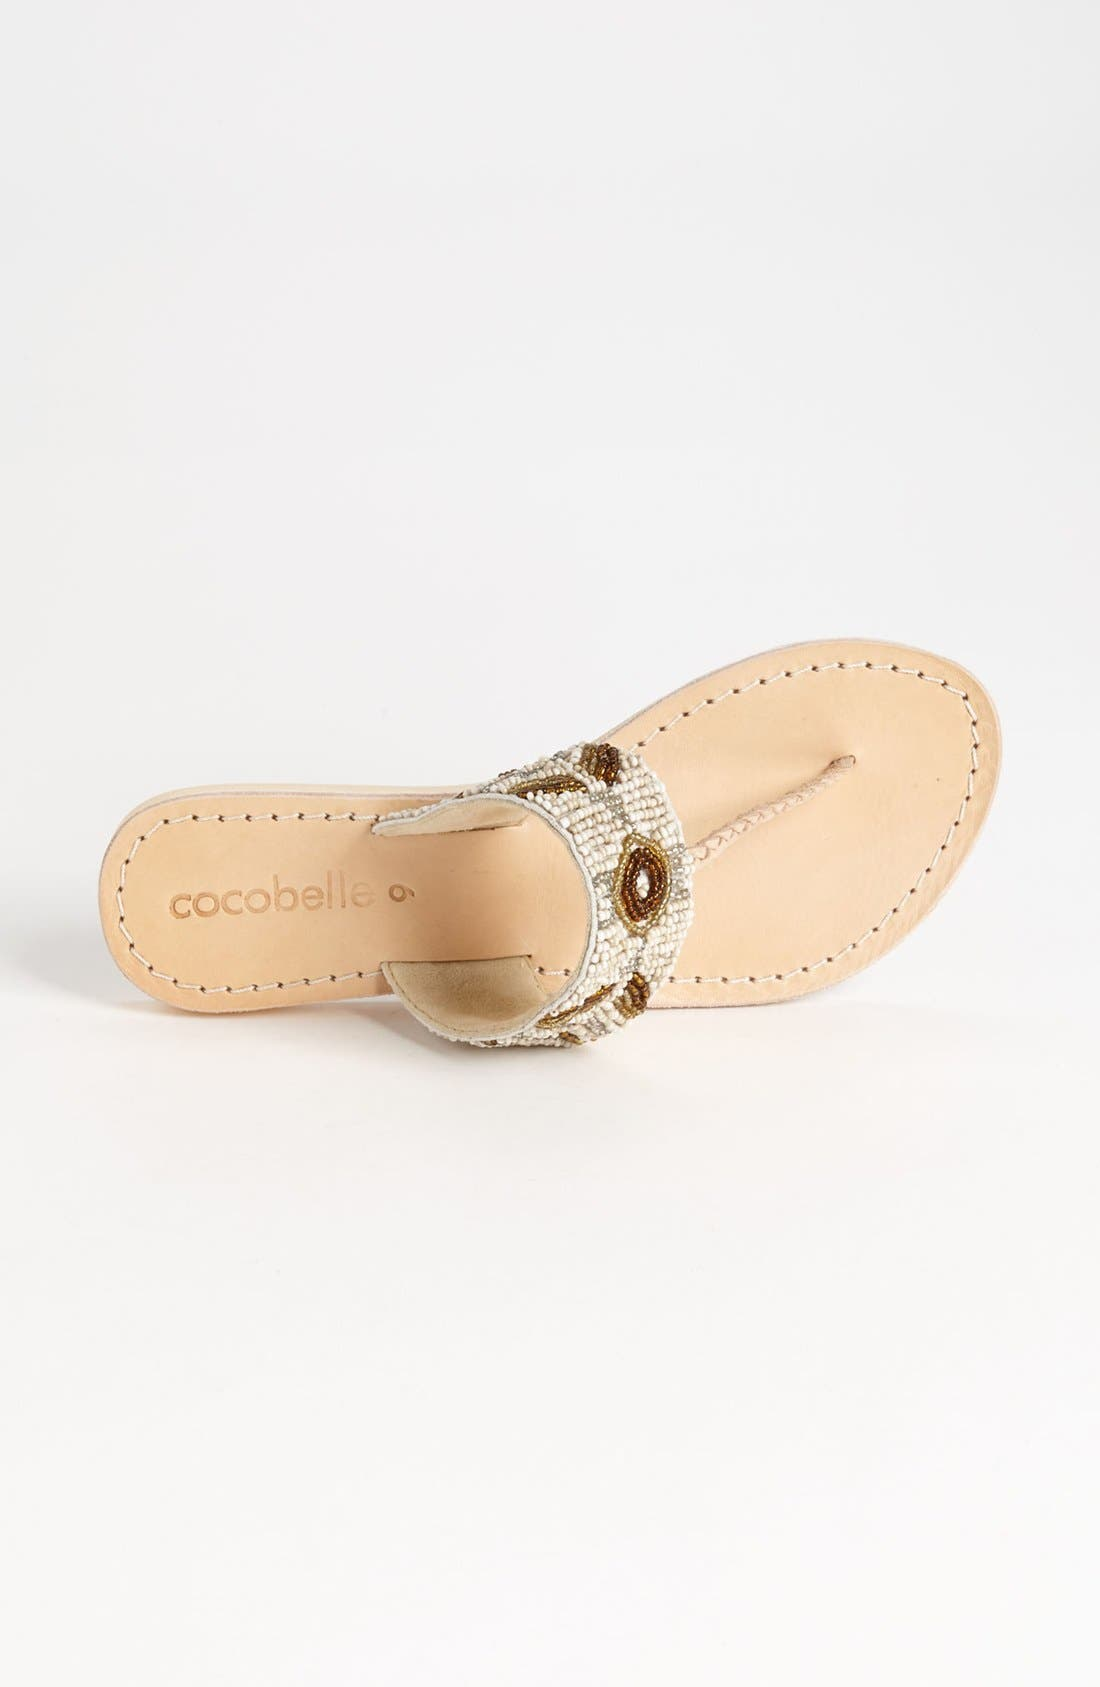 Alternate Image 3  - Cocobelle 'Native' Sandal